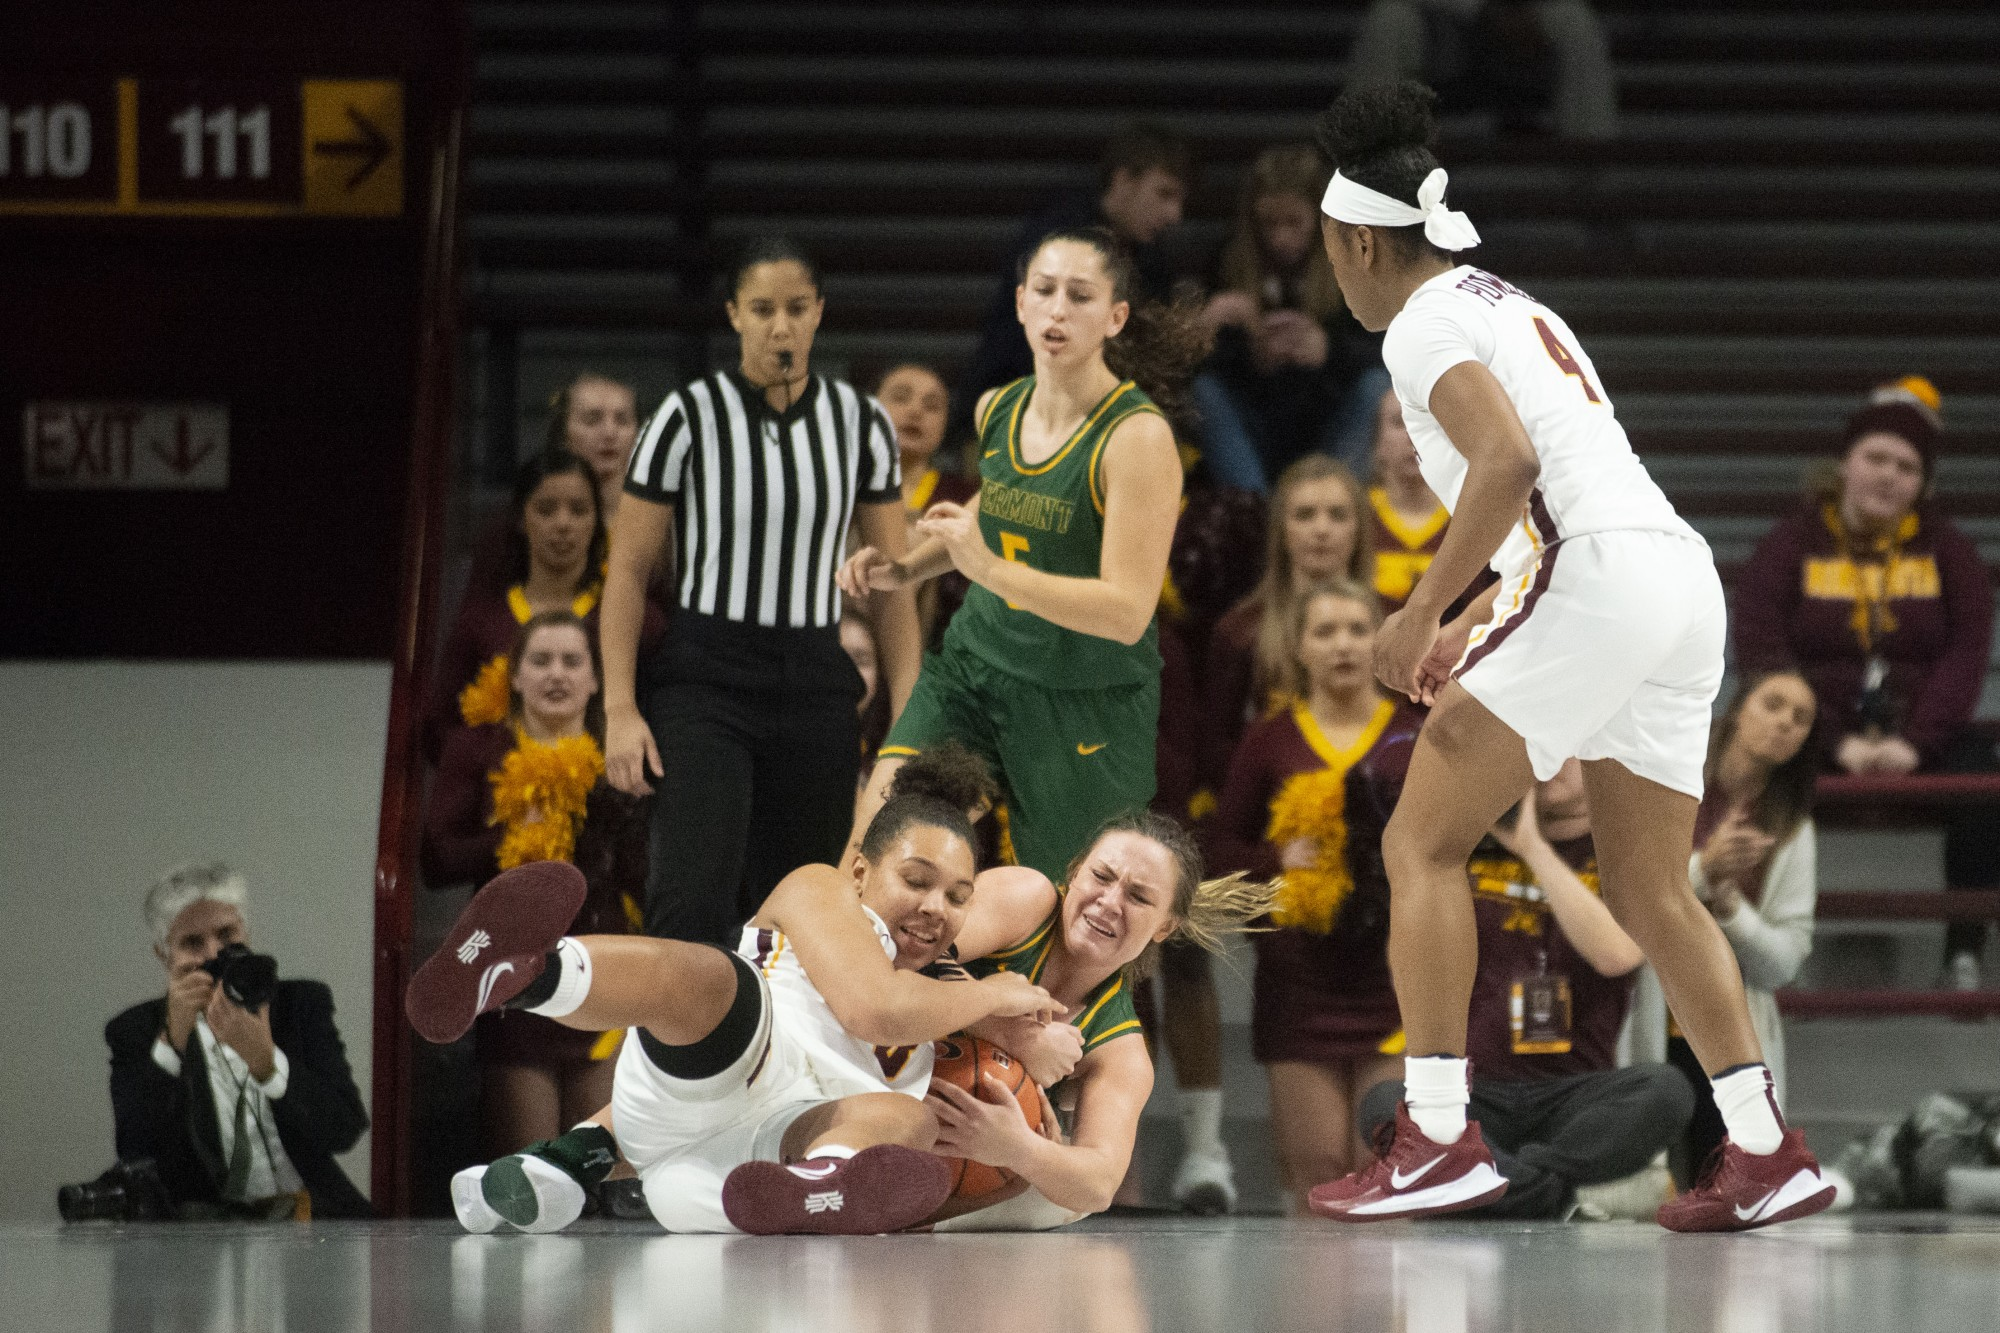 Forward Destiny Pitts fights for the ball at Williams Arena on Sunday, Nov. 10. The Gophers defeated Vermont 90-58.